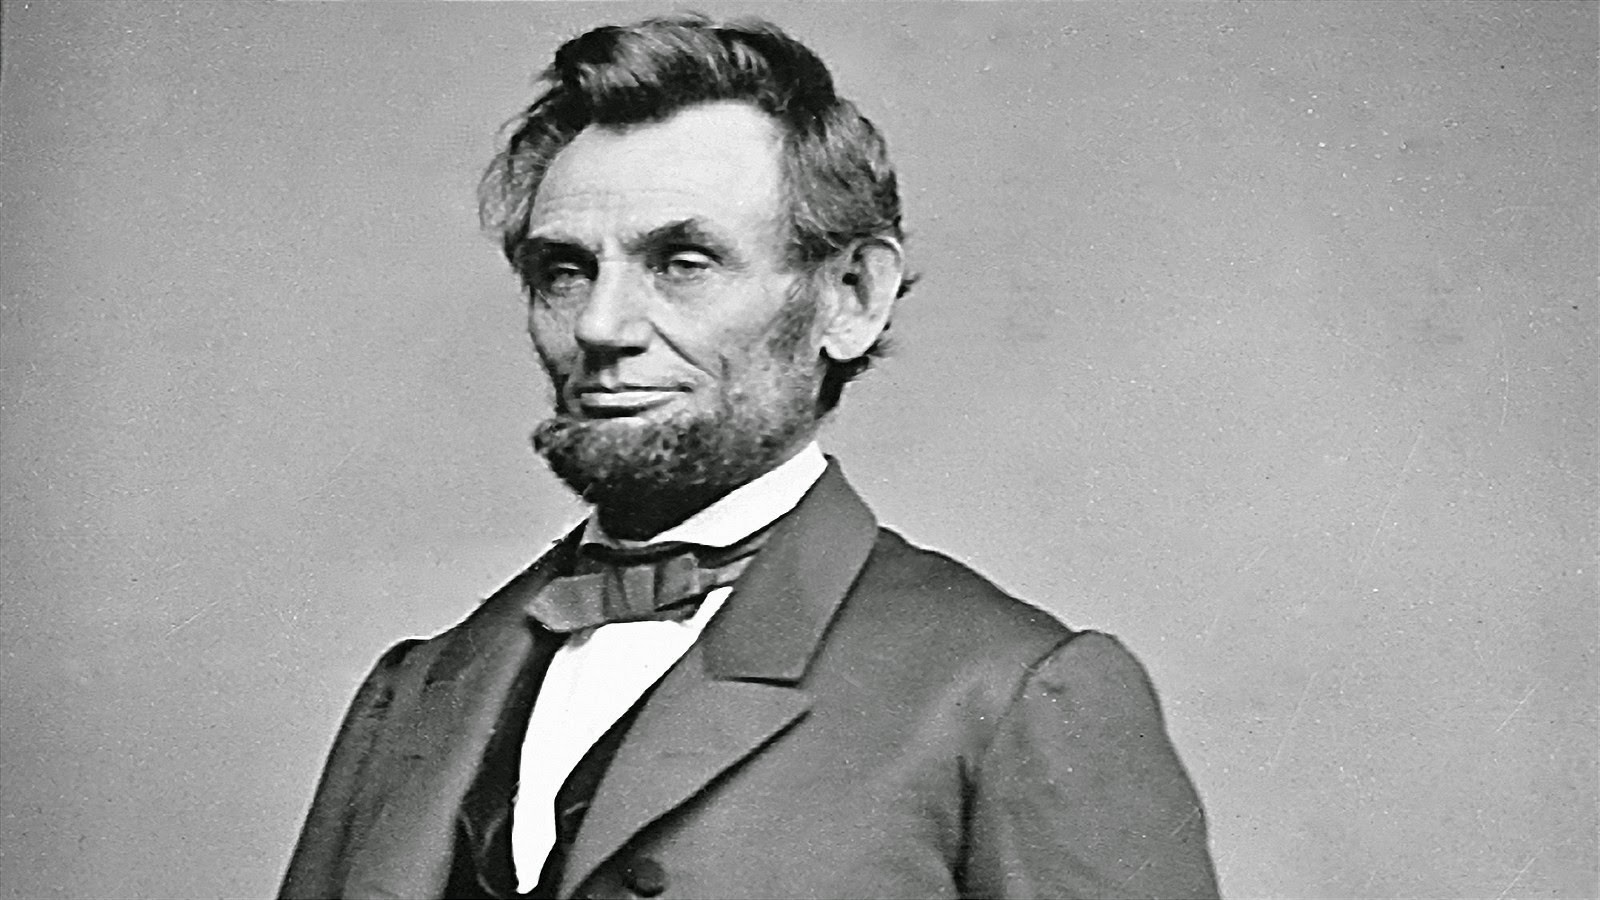 Th popular actions of the 16th president of the united states abraham lincoln